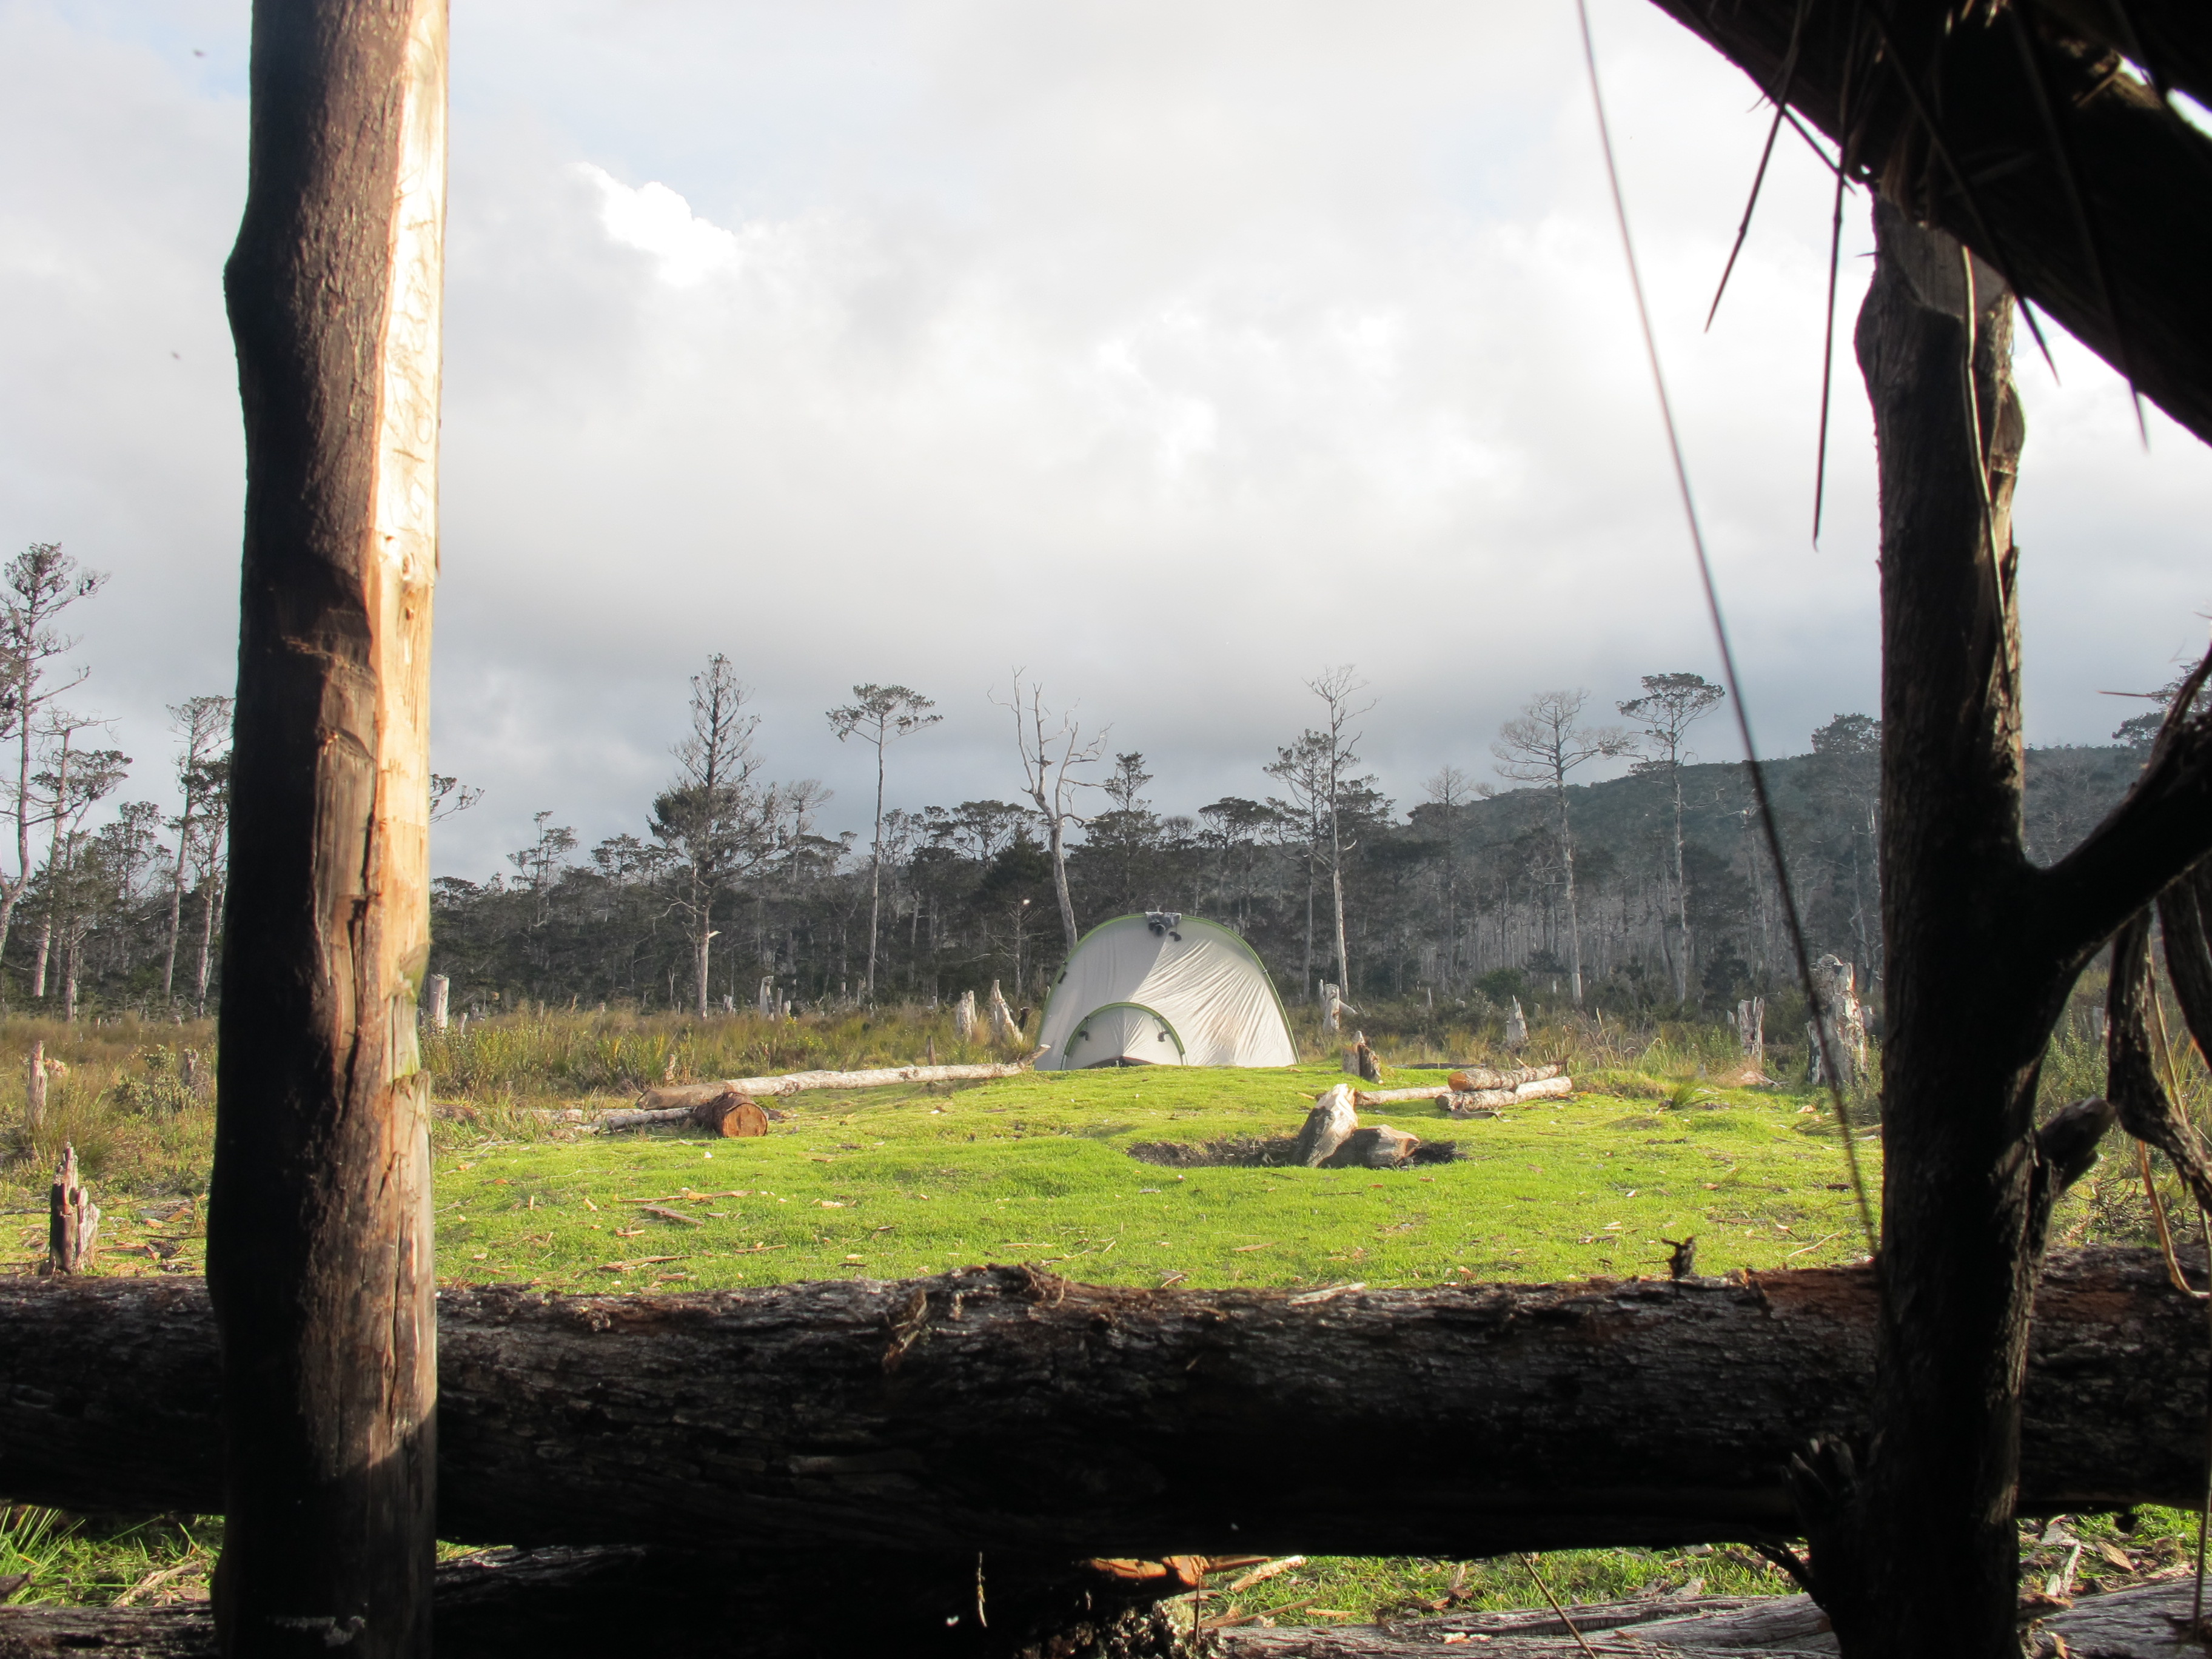 28 Nov 2010 View of tent from Wakikama shelter